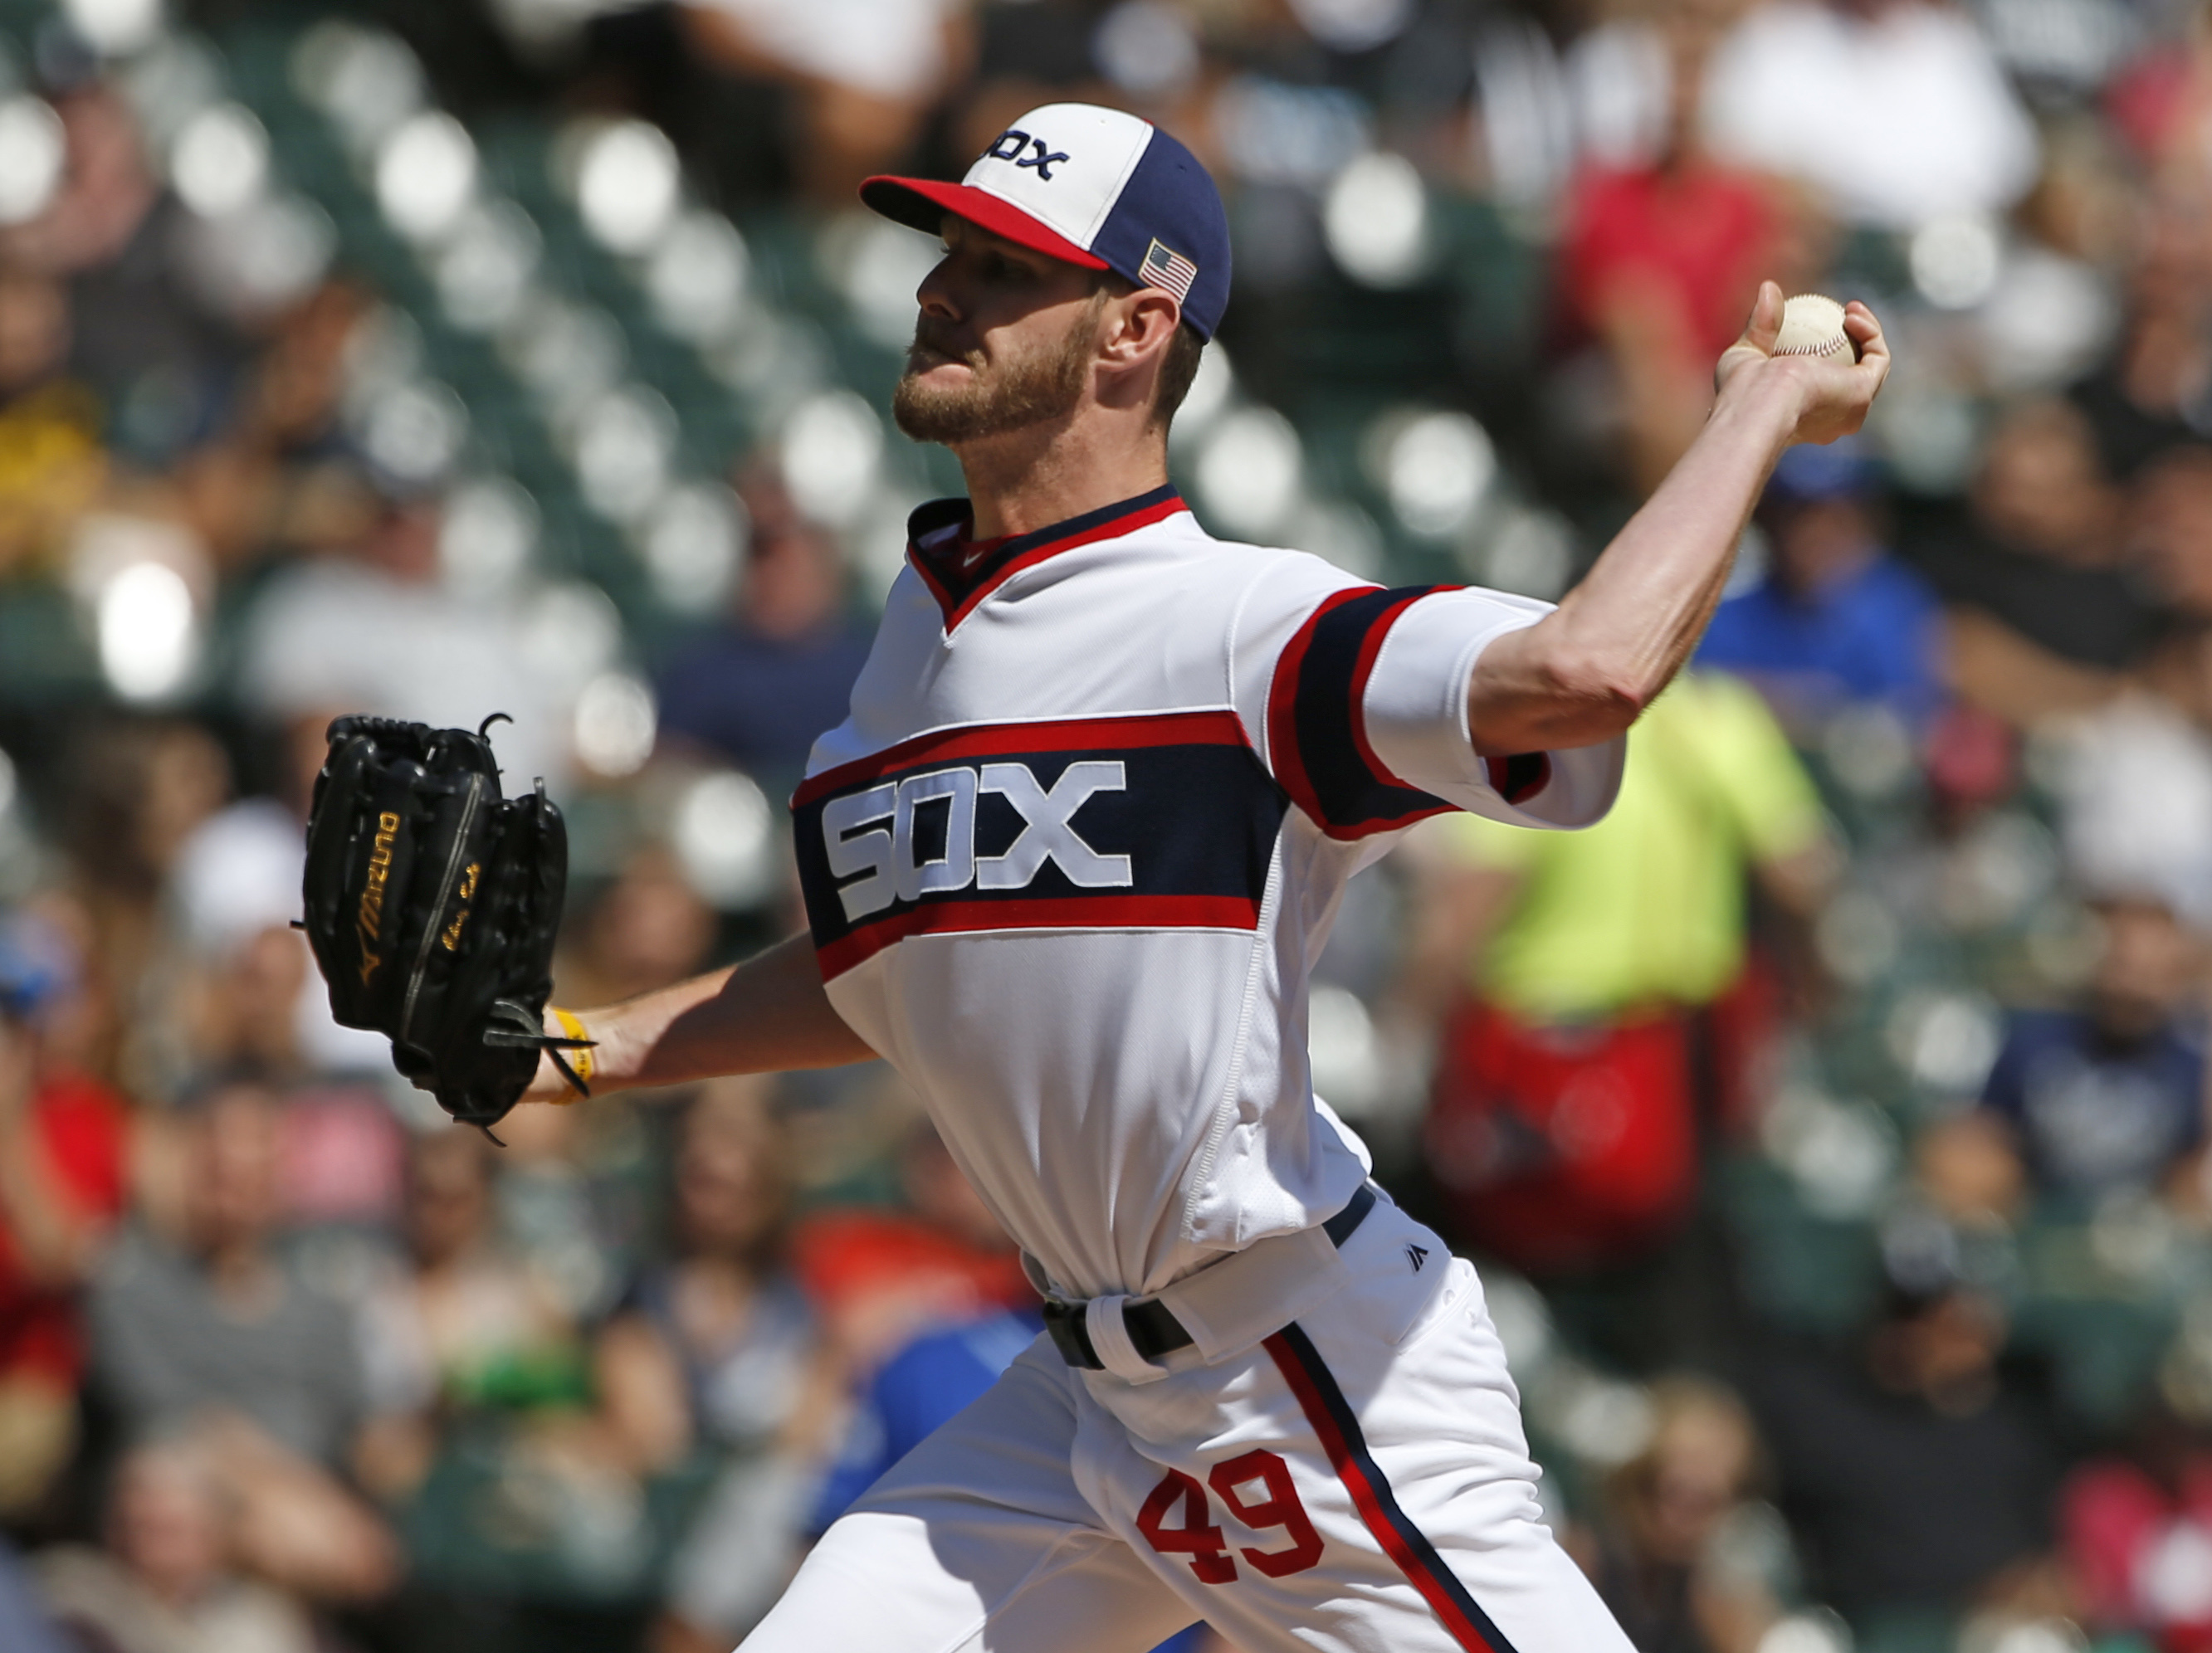 Chicago White Sox starter Chris Sale throws against the Kansas City Royals during the first inning of a baseball game Sunday, Sept. 11, 2016, in Chicago. (AP Photo/Nam Y. Huh)